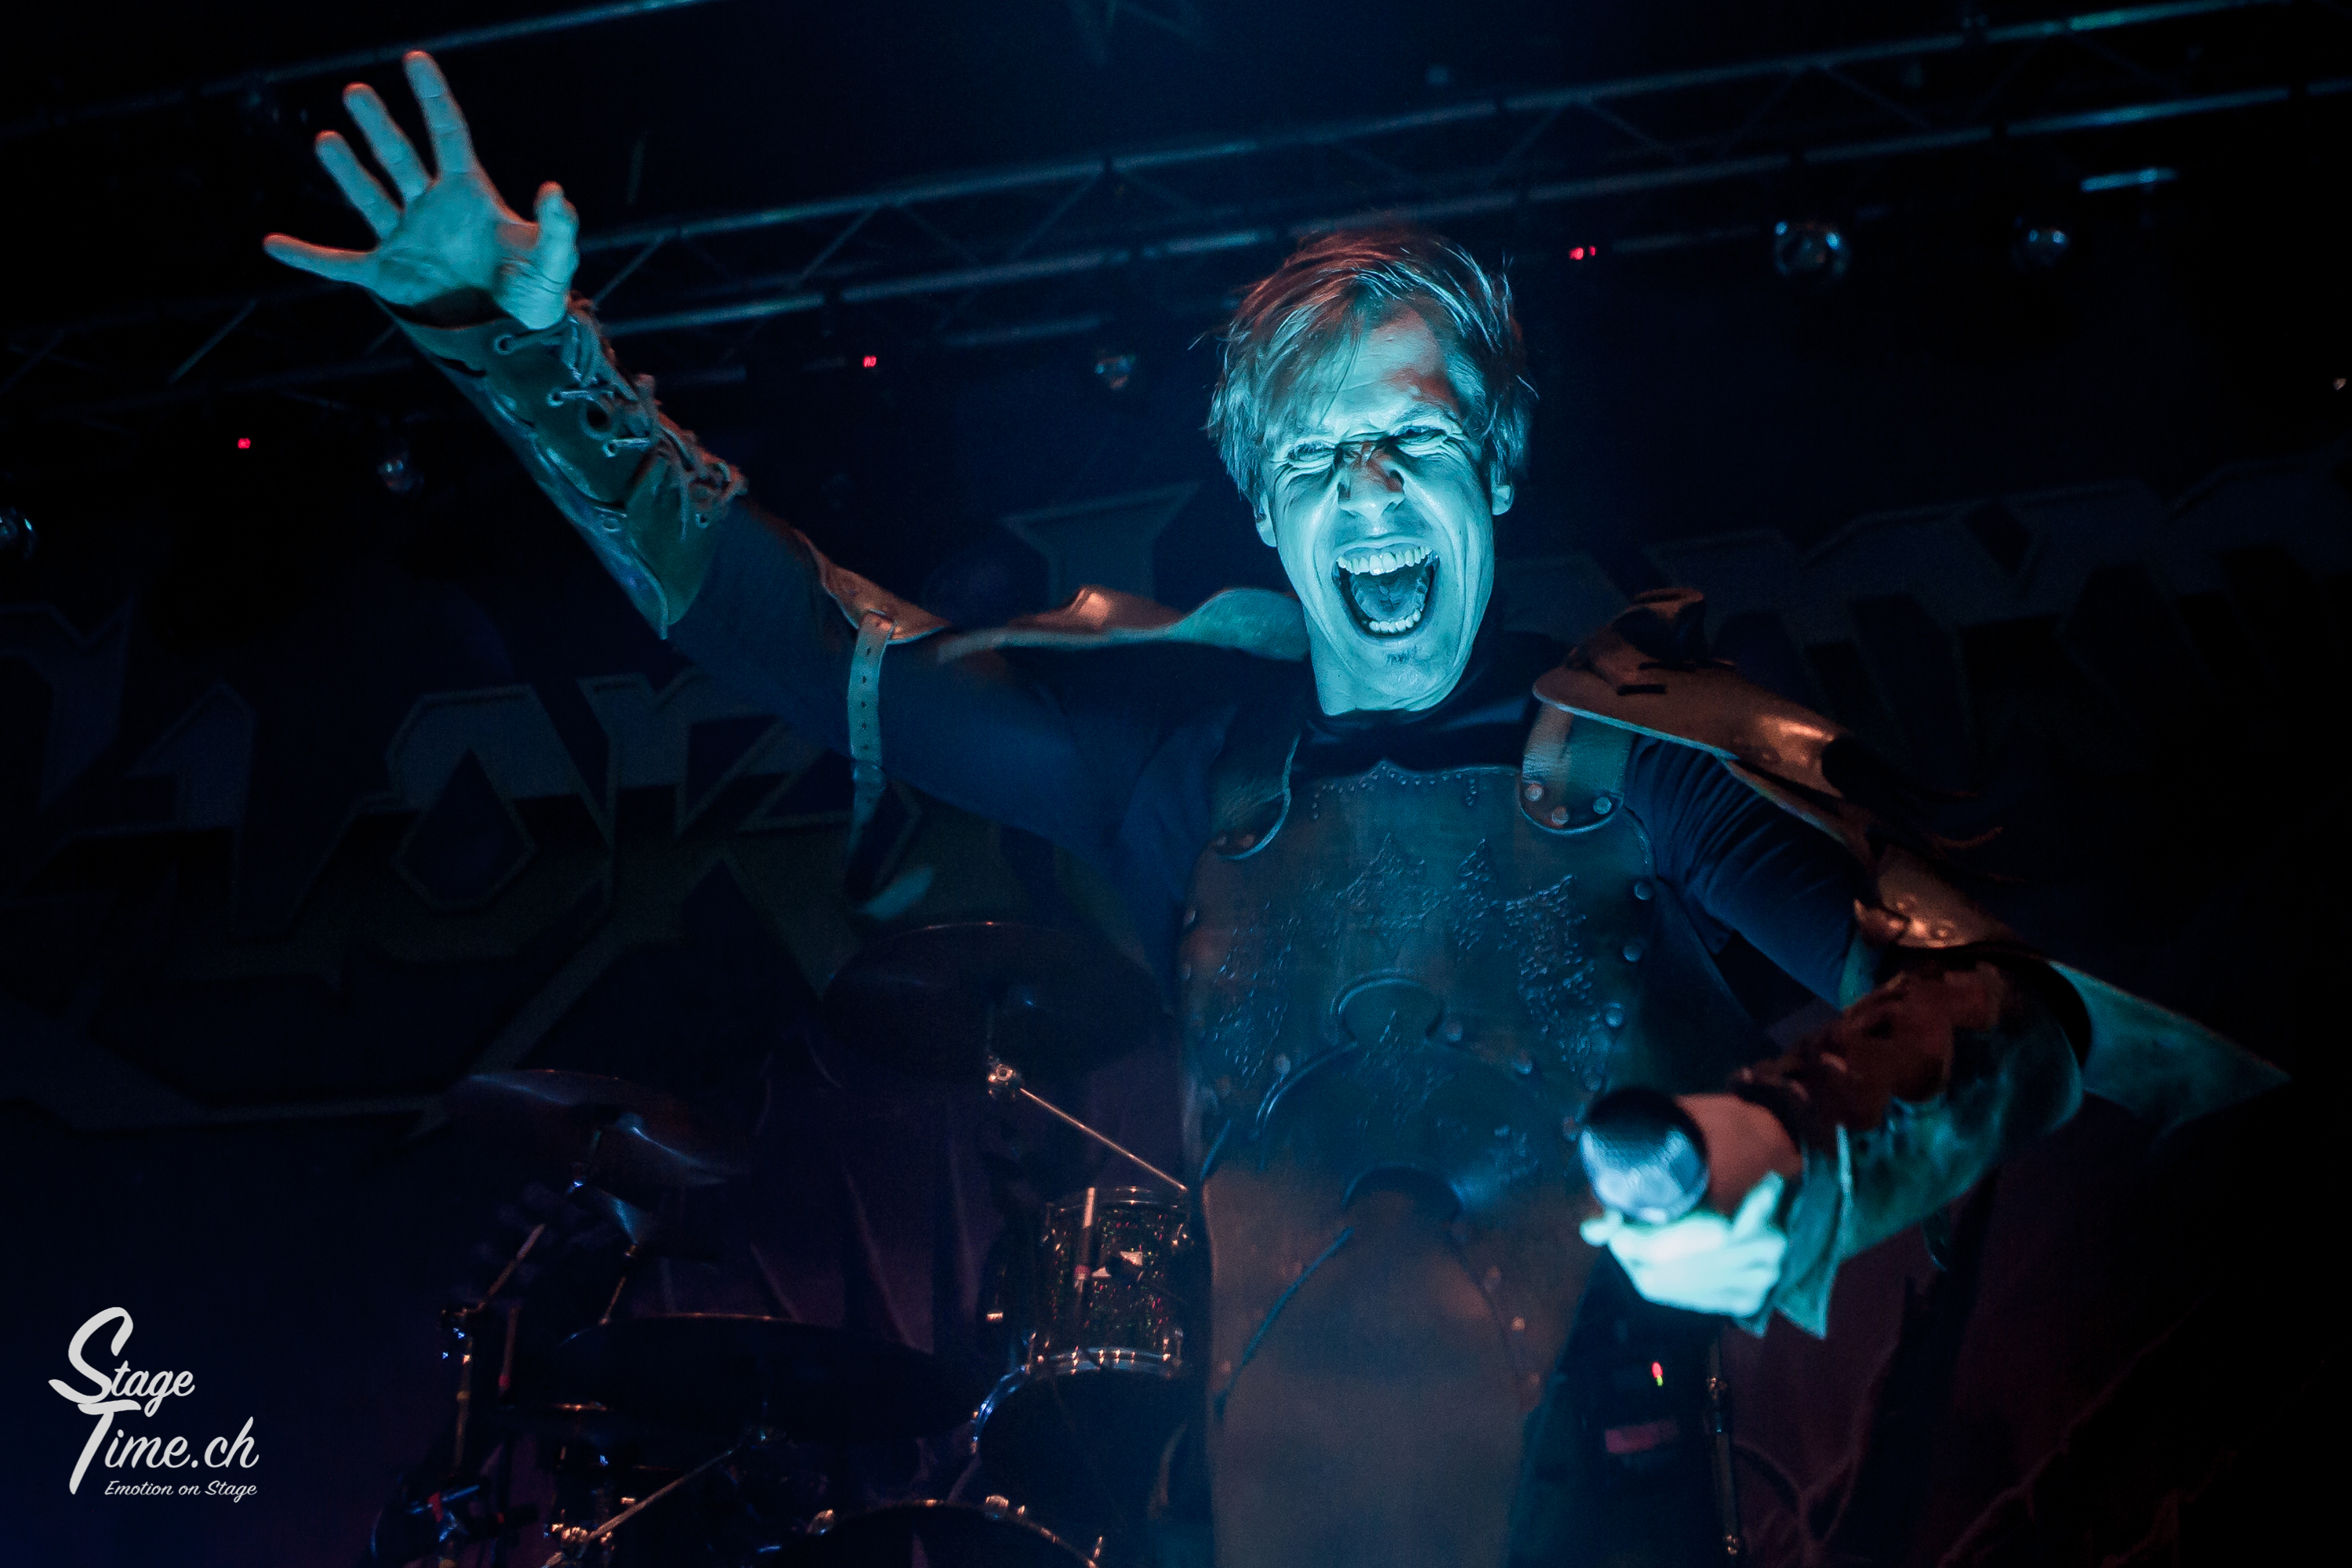 Gloryhammer_(Foto-Christoph_Gurtner-_Stagetime.ch)-10